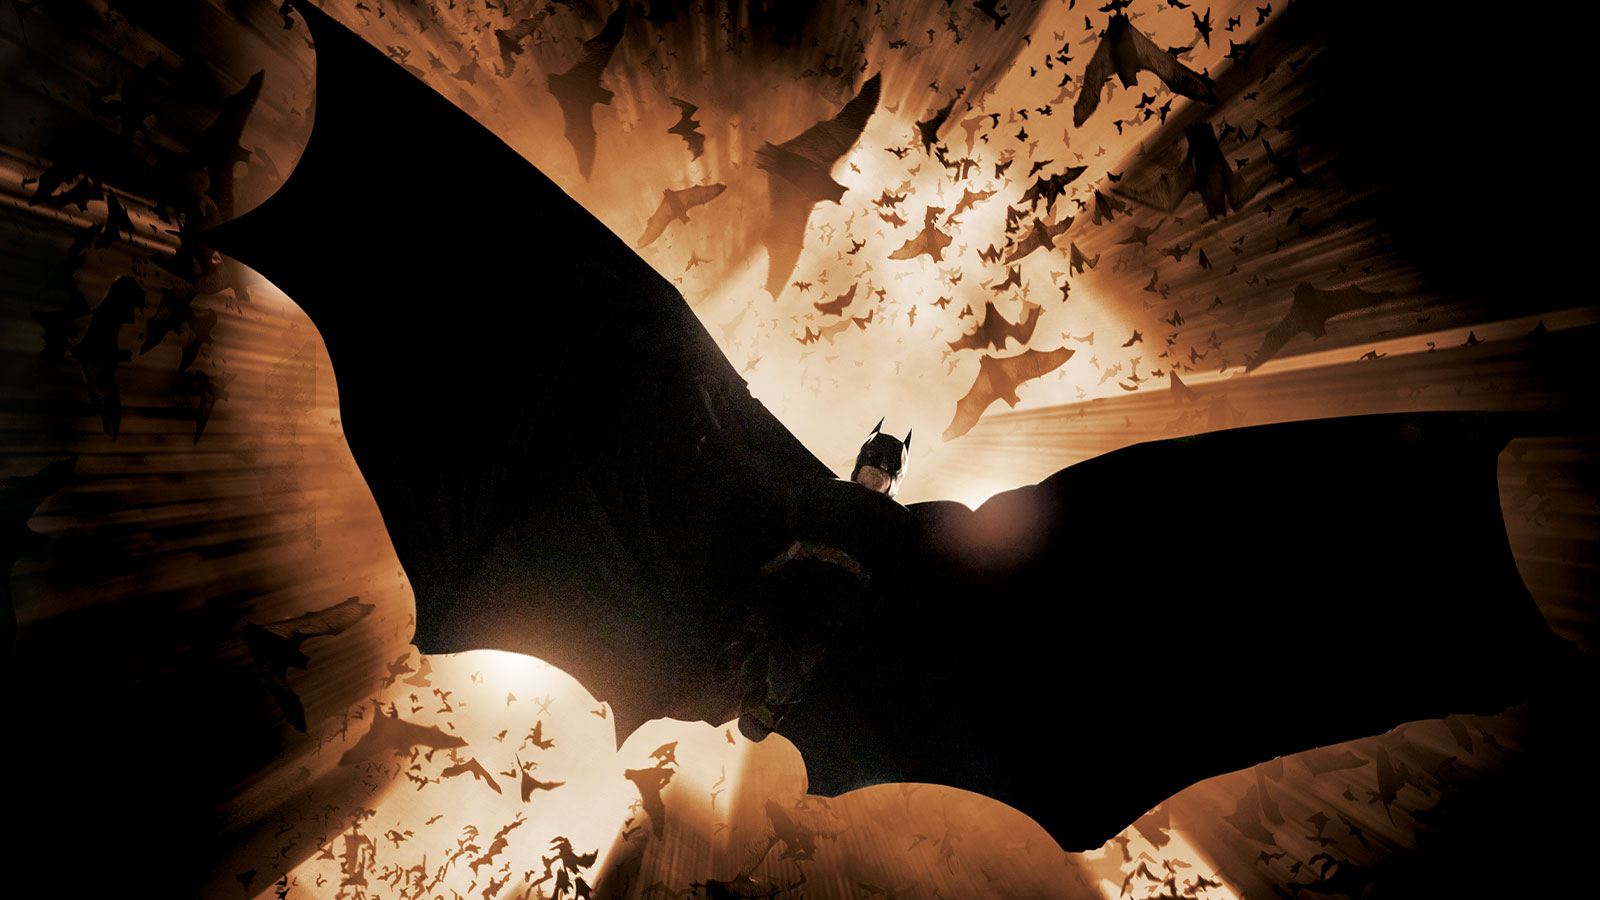 film_batmanbegins_featureimage_desktop_1600x900.jpg